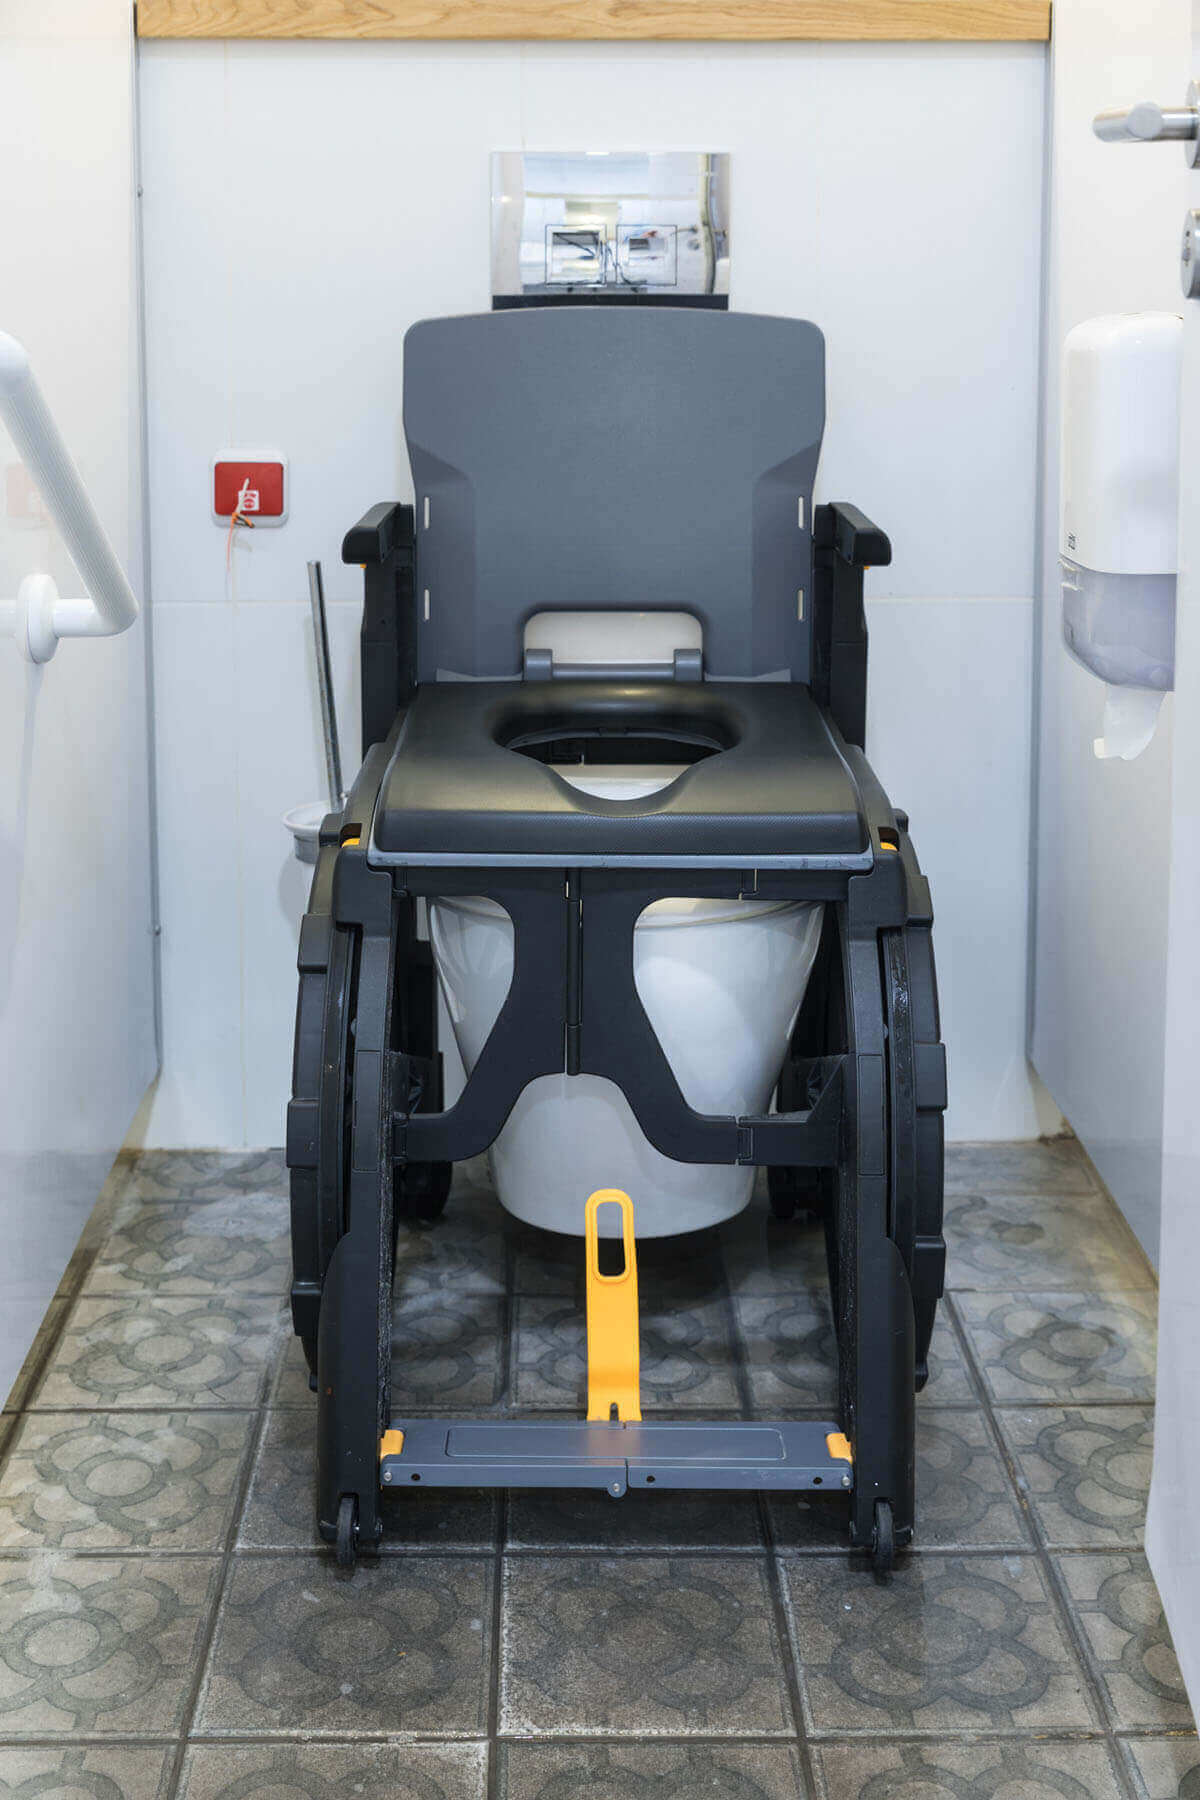 The Seatara WheelAble Toilet and Shower Chair over a toilet